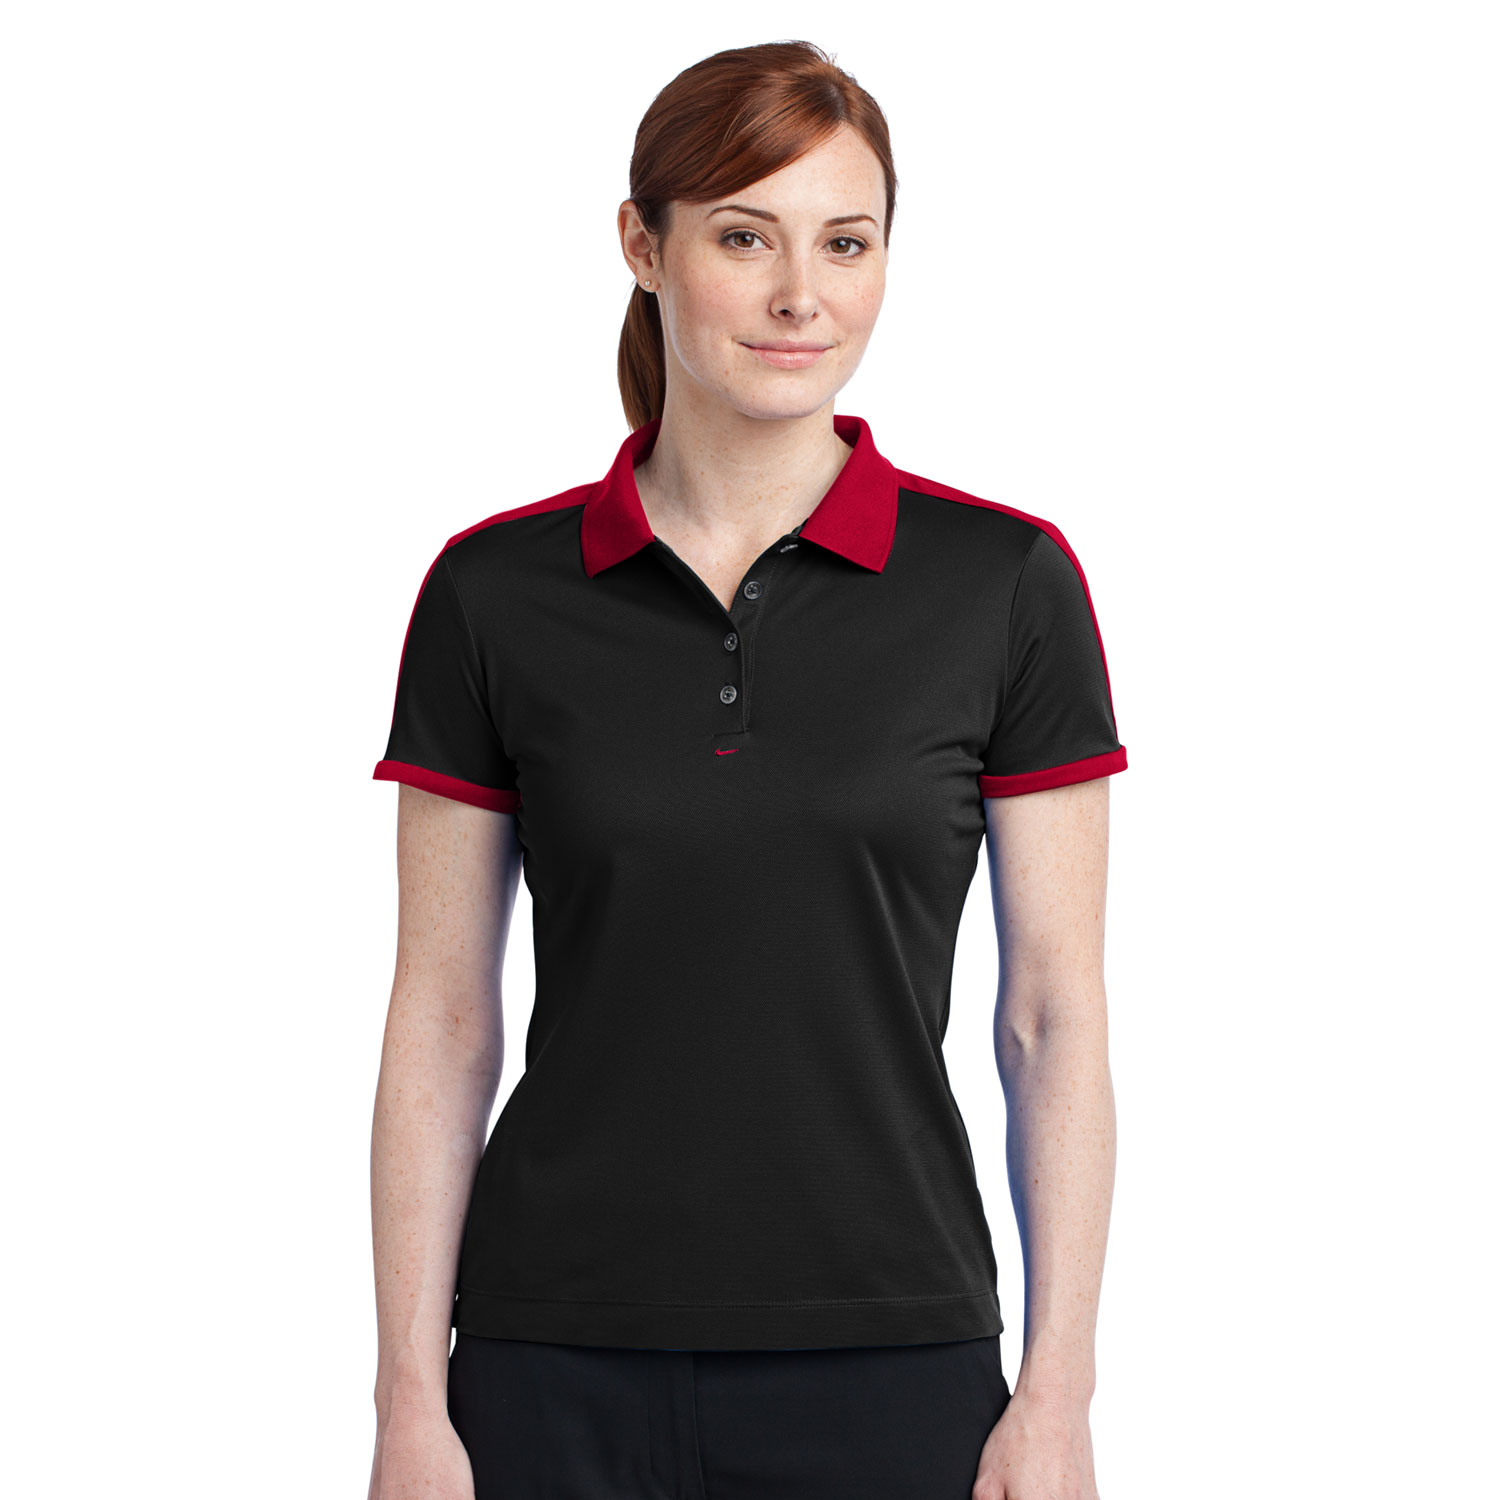 ab6d590ed26ef Nike Golf Ladies two tone color Dri-FIT N98 Polo – Cherie4art ...